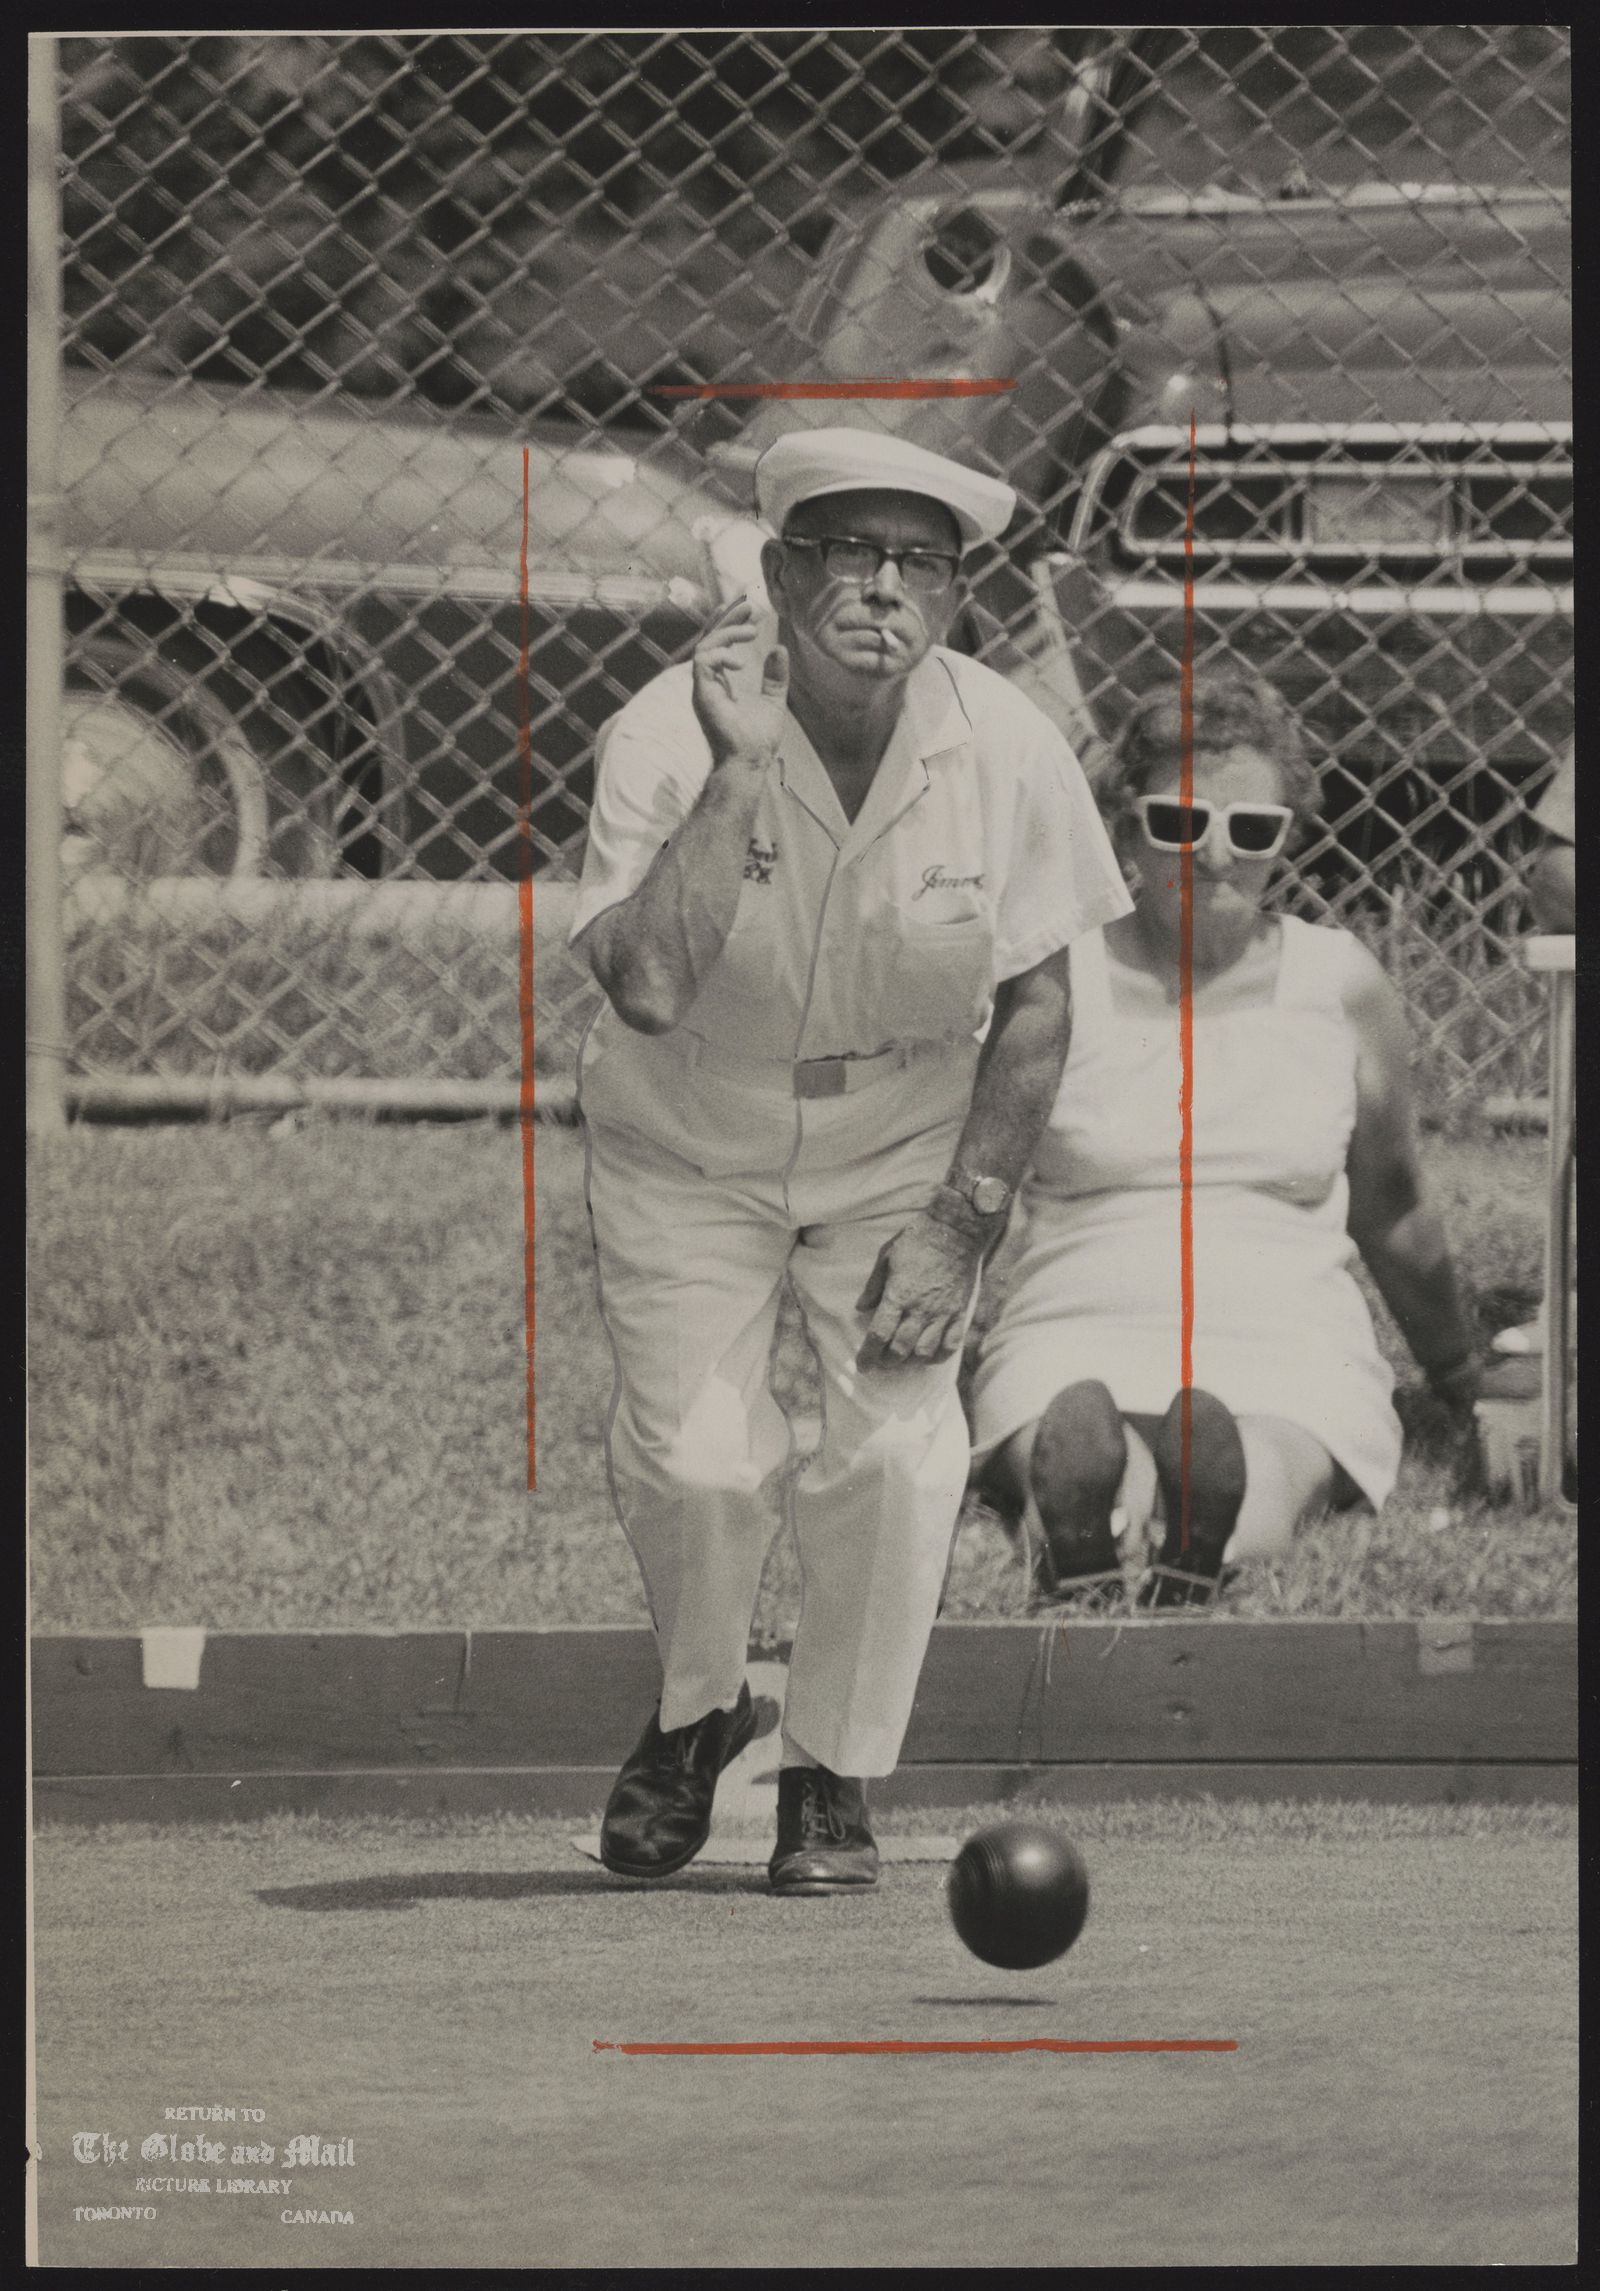 The notes transcribed from the back of this photograph are as follows: LAWN BOWLING Jimmy Welch. at Provincial Lawn Bowling tournament Welch, Bowls #1.